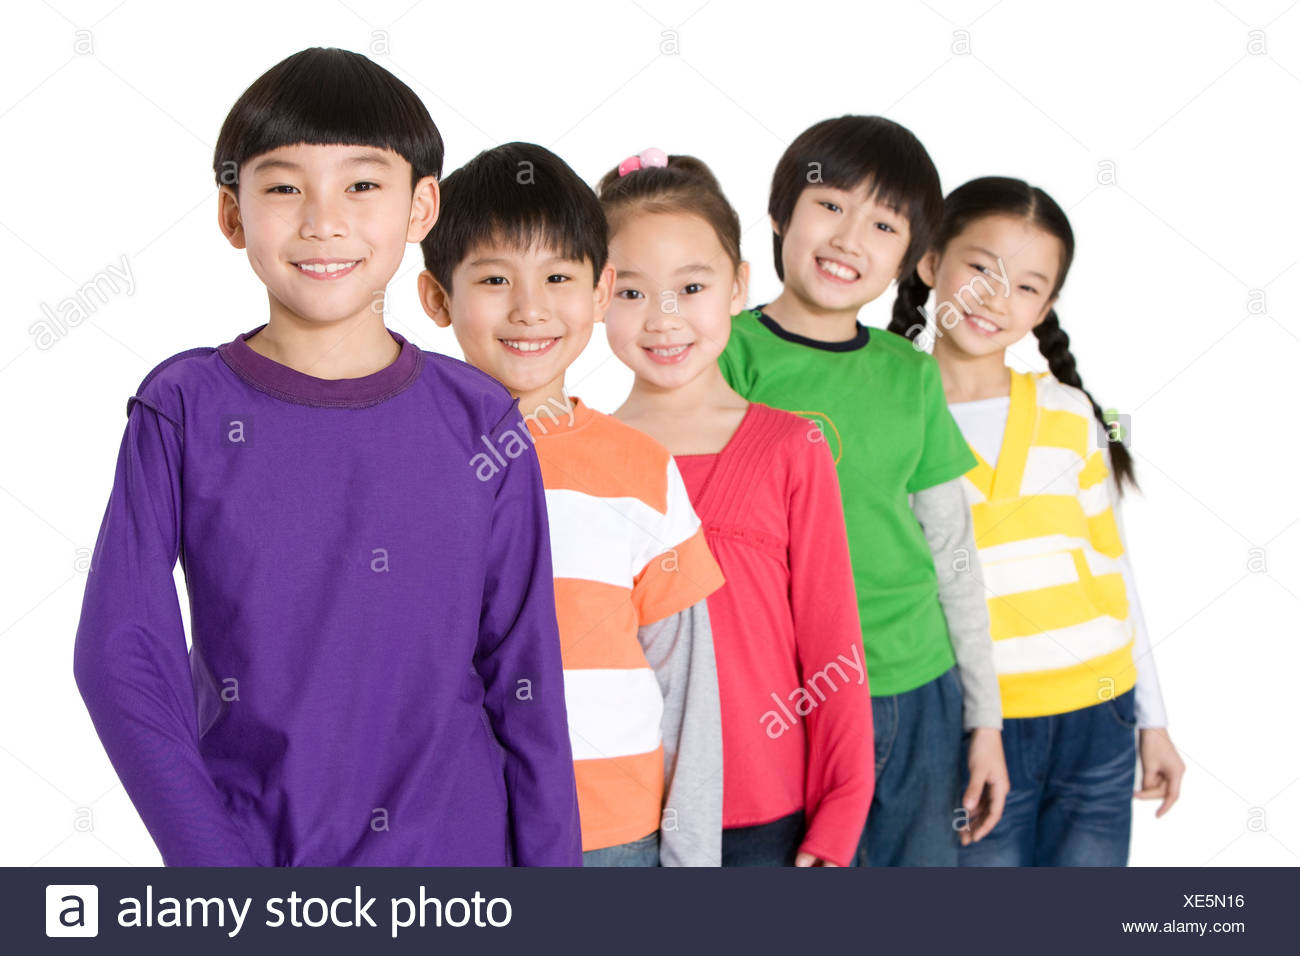 A group of friends standing in a row - Stock Image